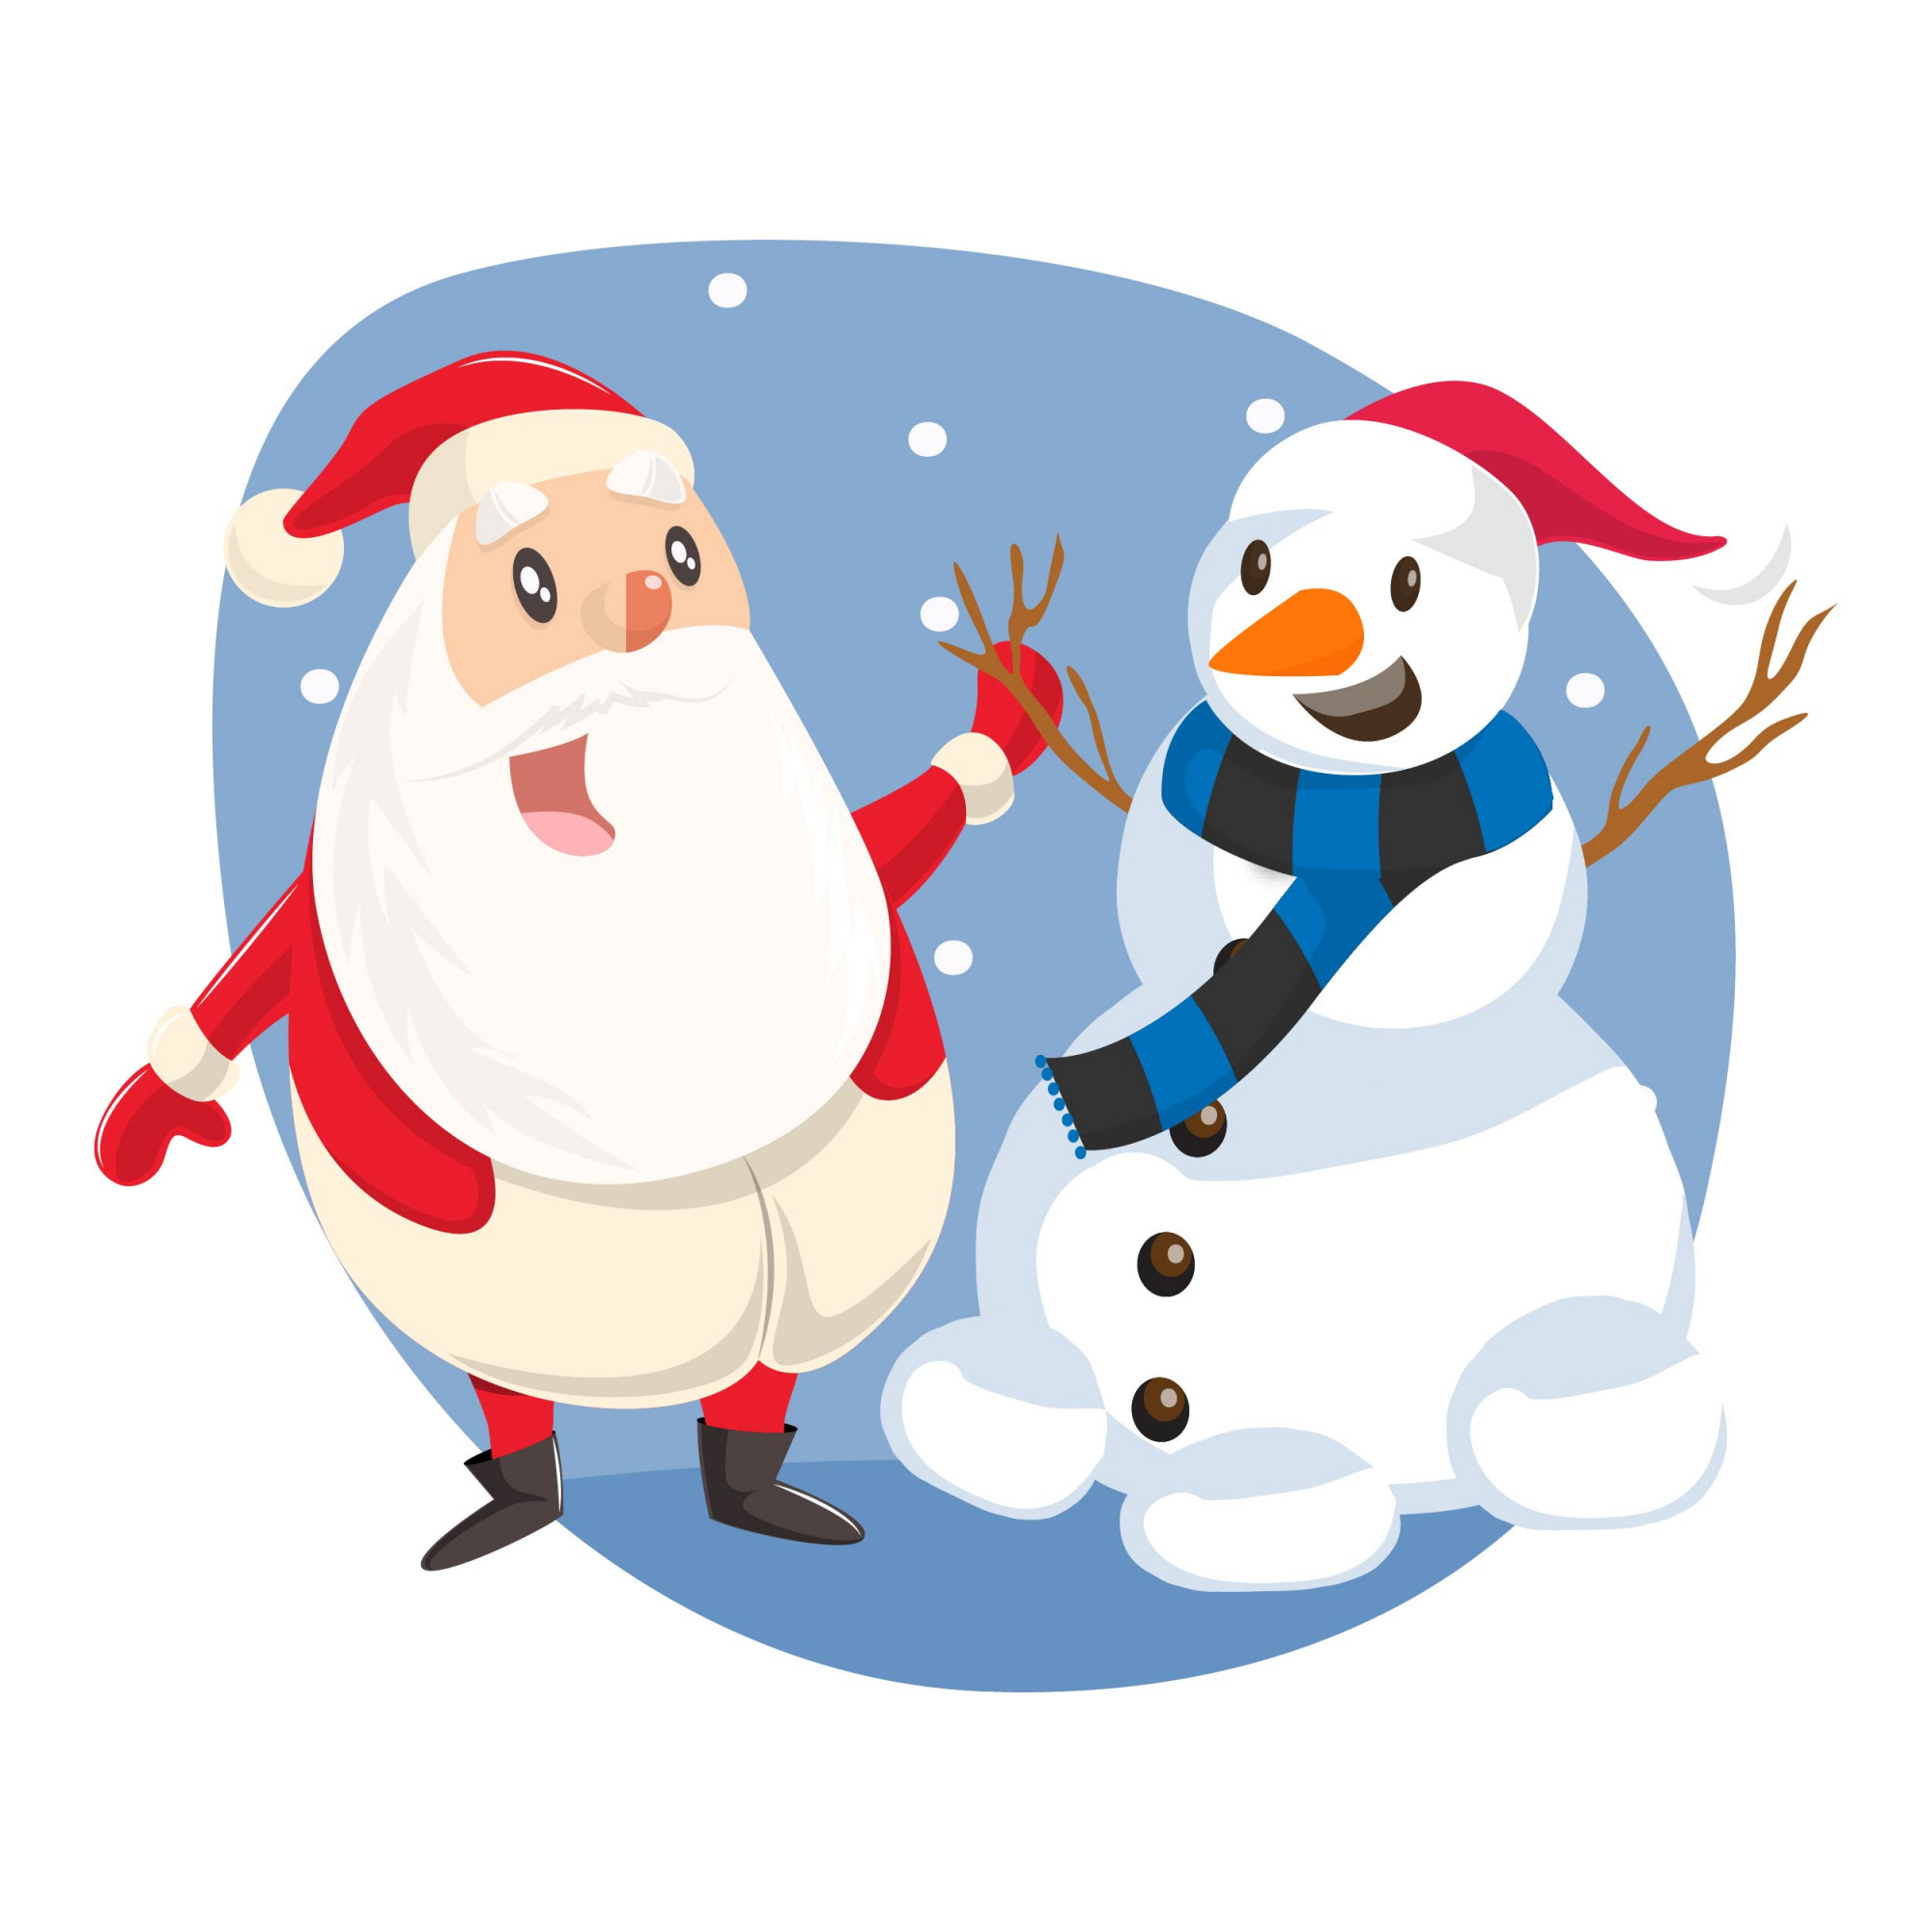 Illustration of cute Santa standing with snowman.